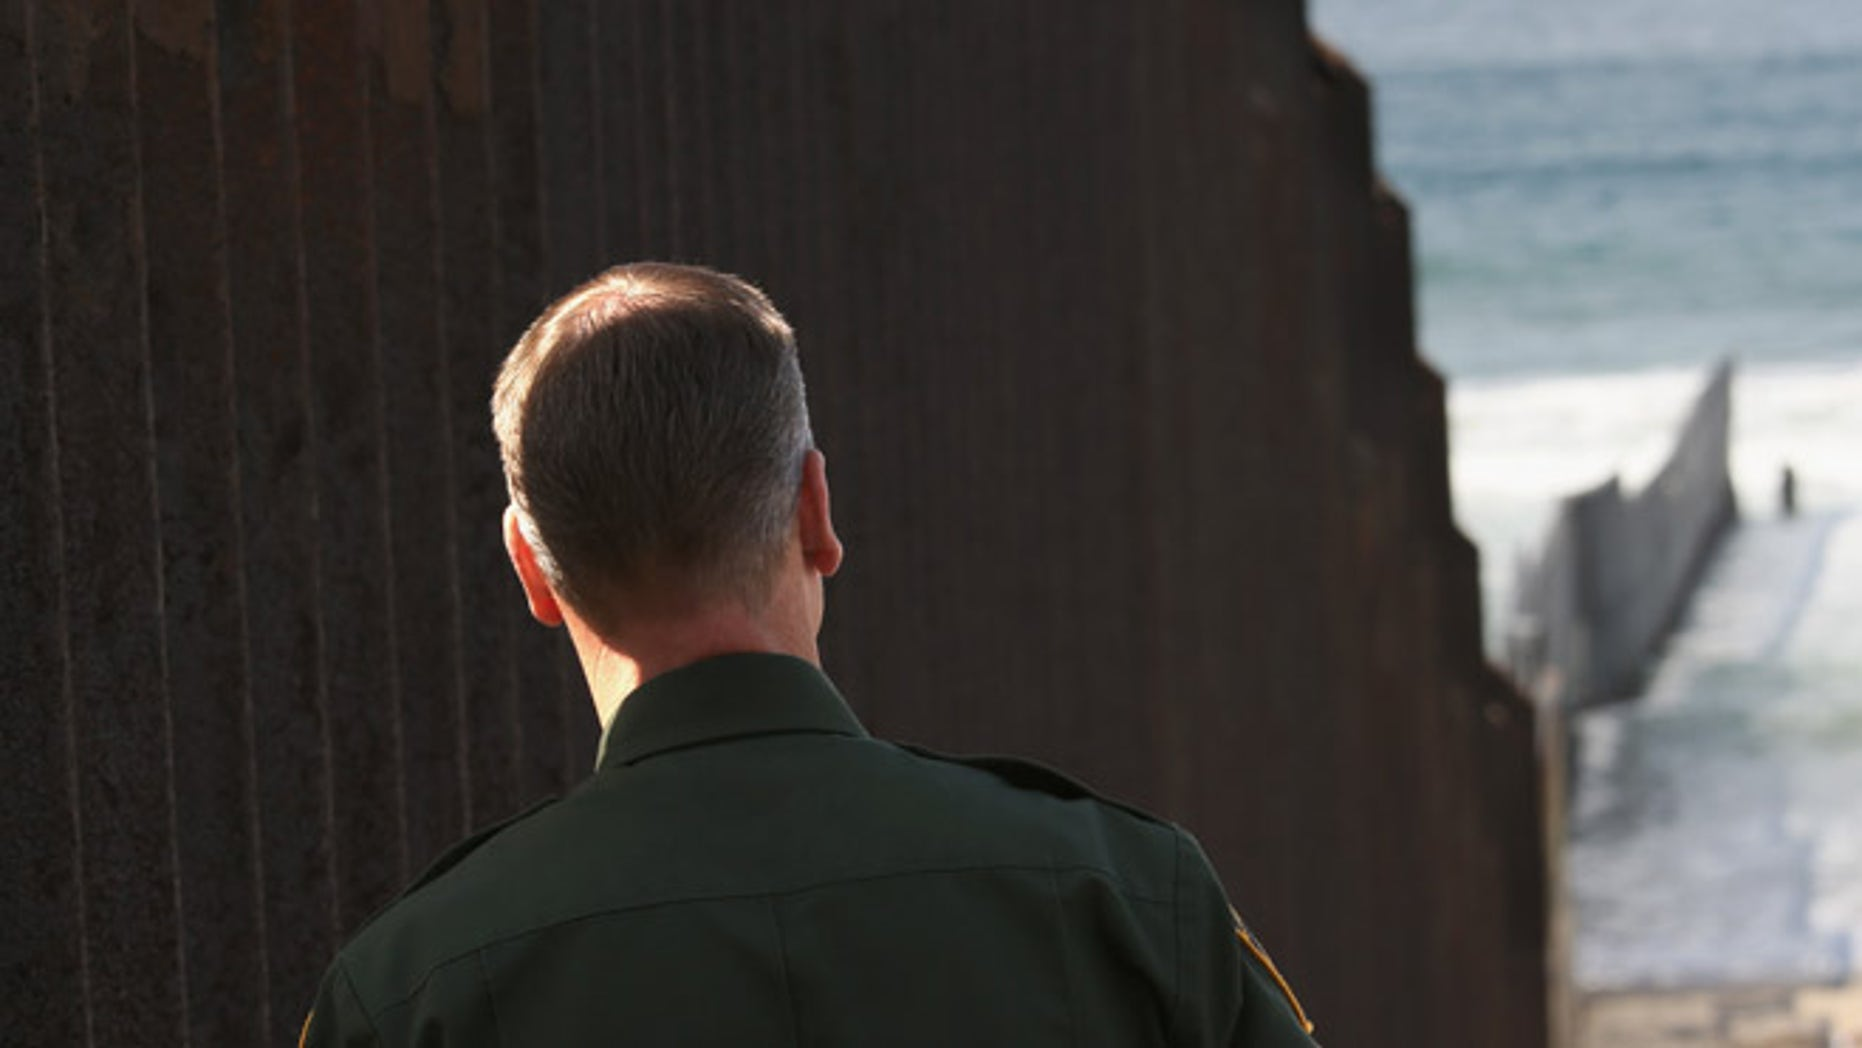 """SAN DIEGO, CA - OCTOBER 03: A U.S. Border Patrol agent looks to where the U.S.-Mexico border fence stretches into the Pacific Ocean on October 3, 2013 in San Diego, California. While hundreds of thousands of government workers were furloughed this week, thousands of Border Patrol agents, air-traffic controllers, prison guards and other federal employees deemed """"essential"""" remain on duty, although their pay may be delayed. (Photo by John Moore/Getty Images)"""